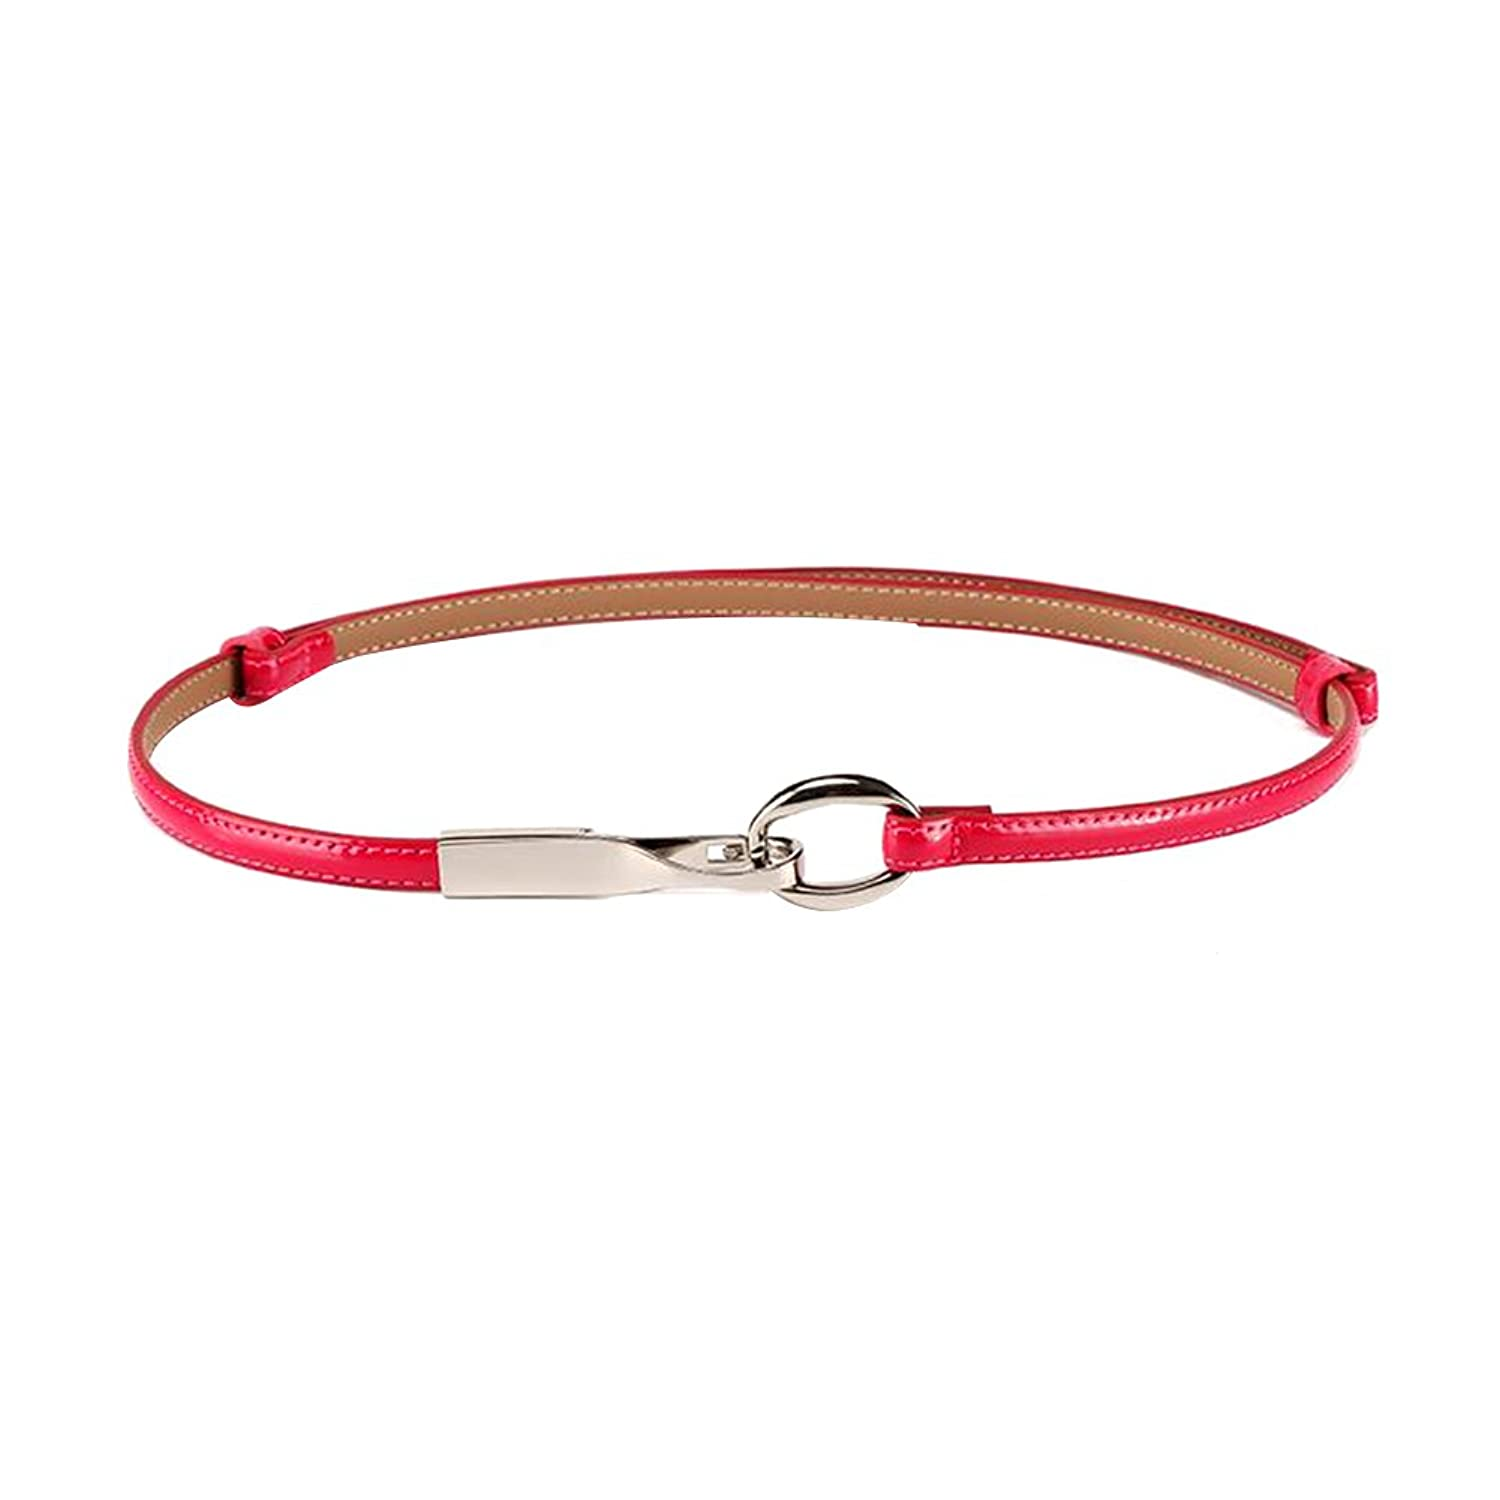 Sitong women's fashion casual hook leather belt(7 colors)